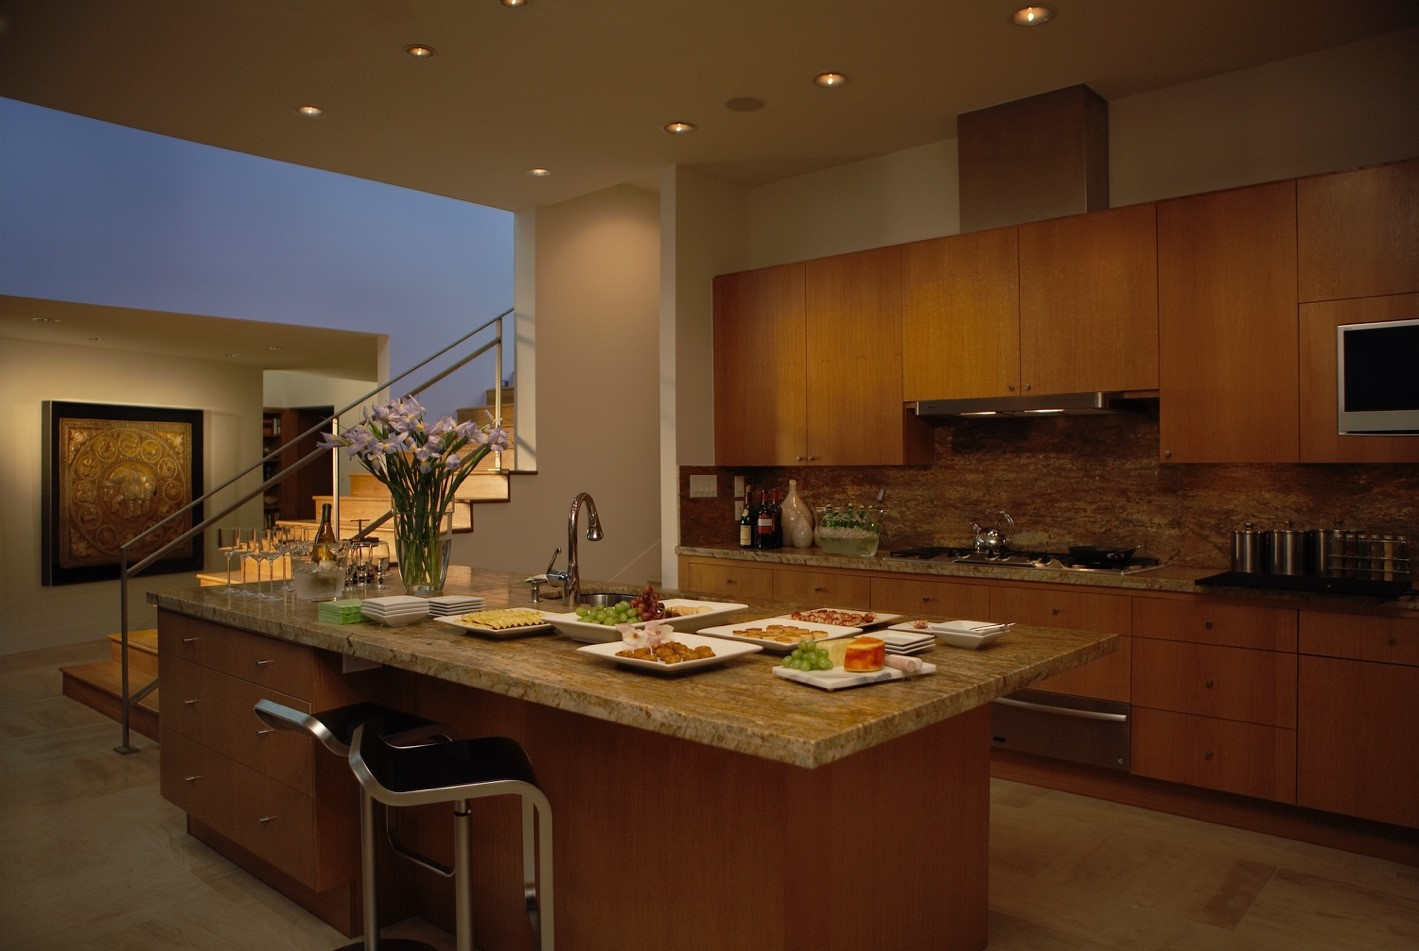 Enhance Interior Design with Smart Lighting Systems